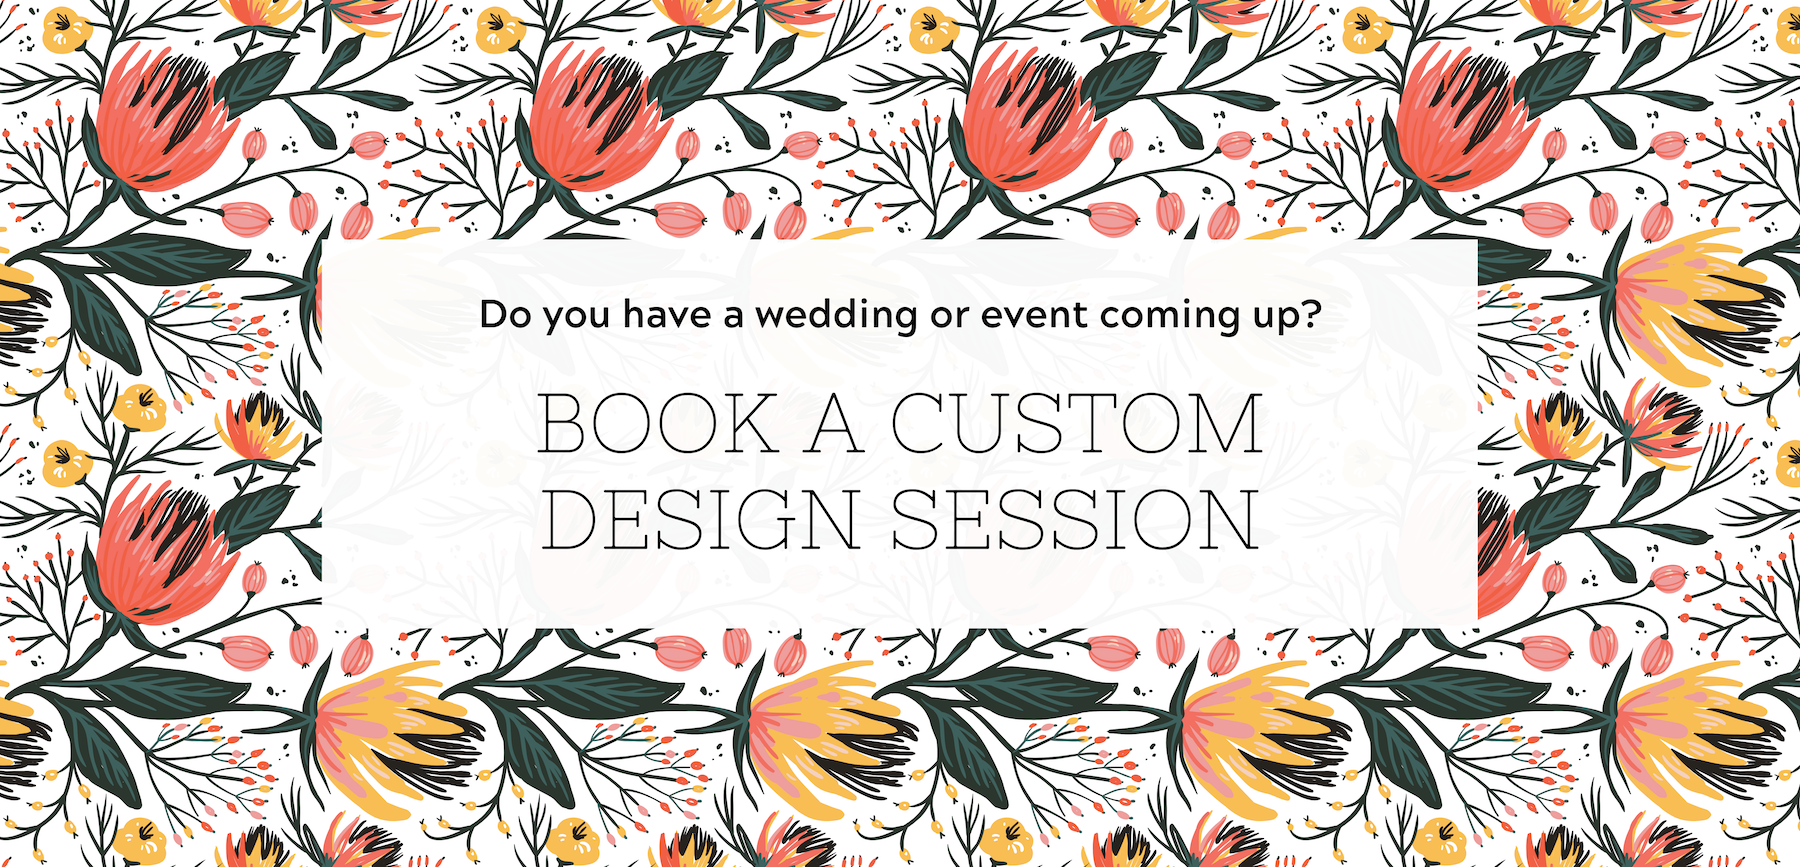 custom jewelry design sessions with atonement design